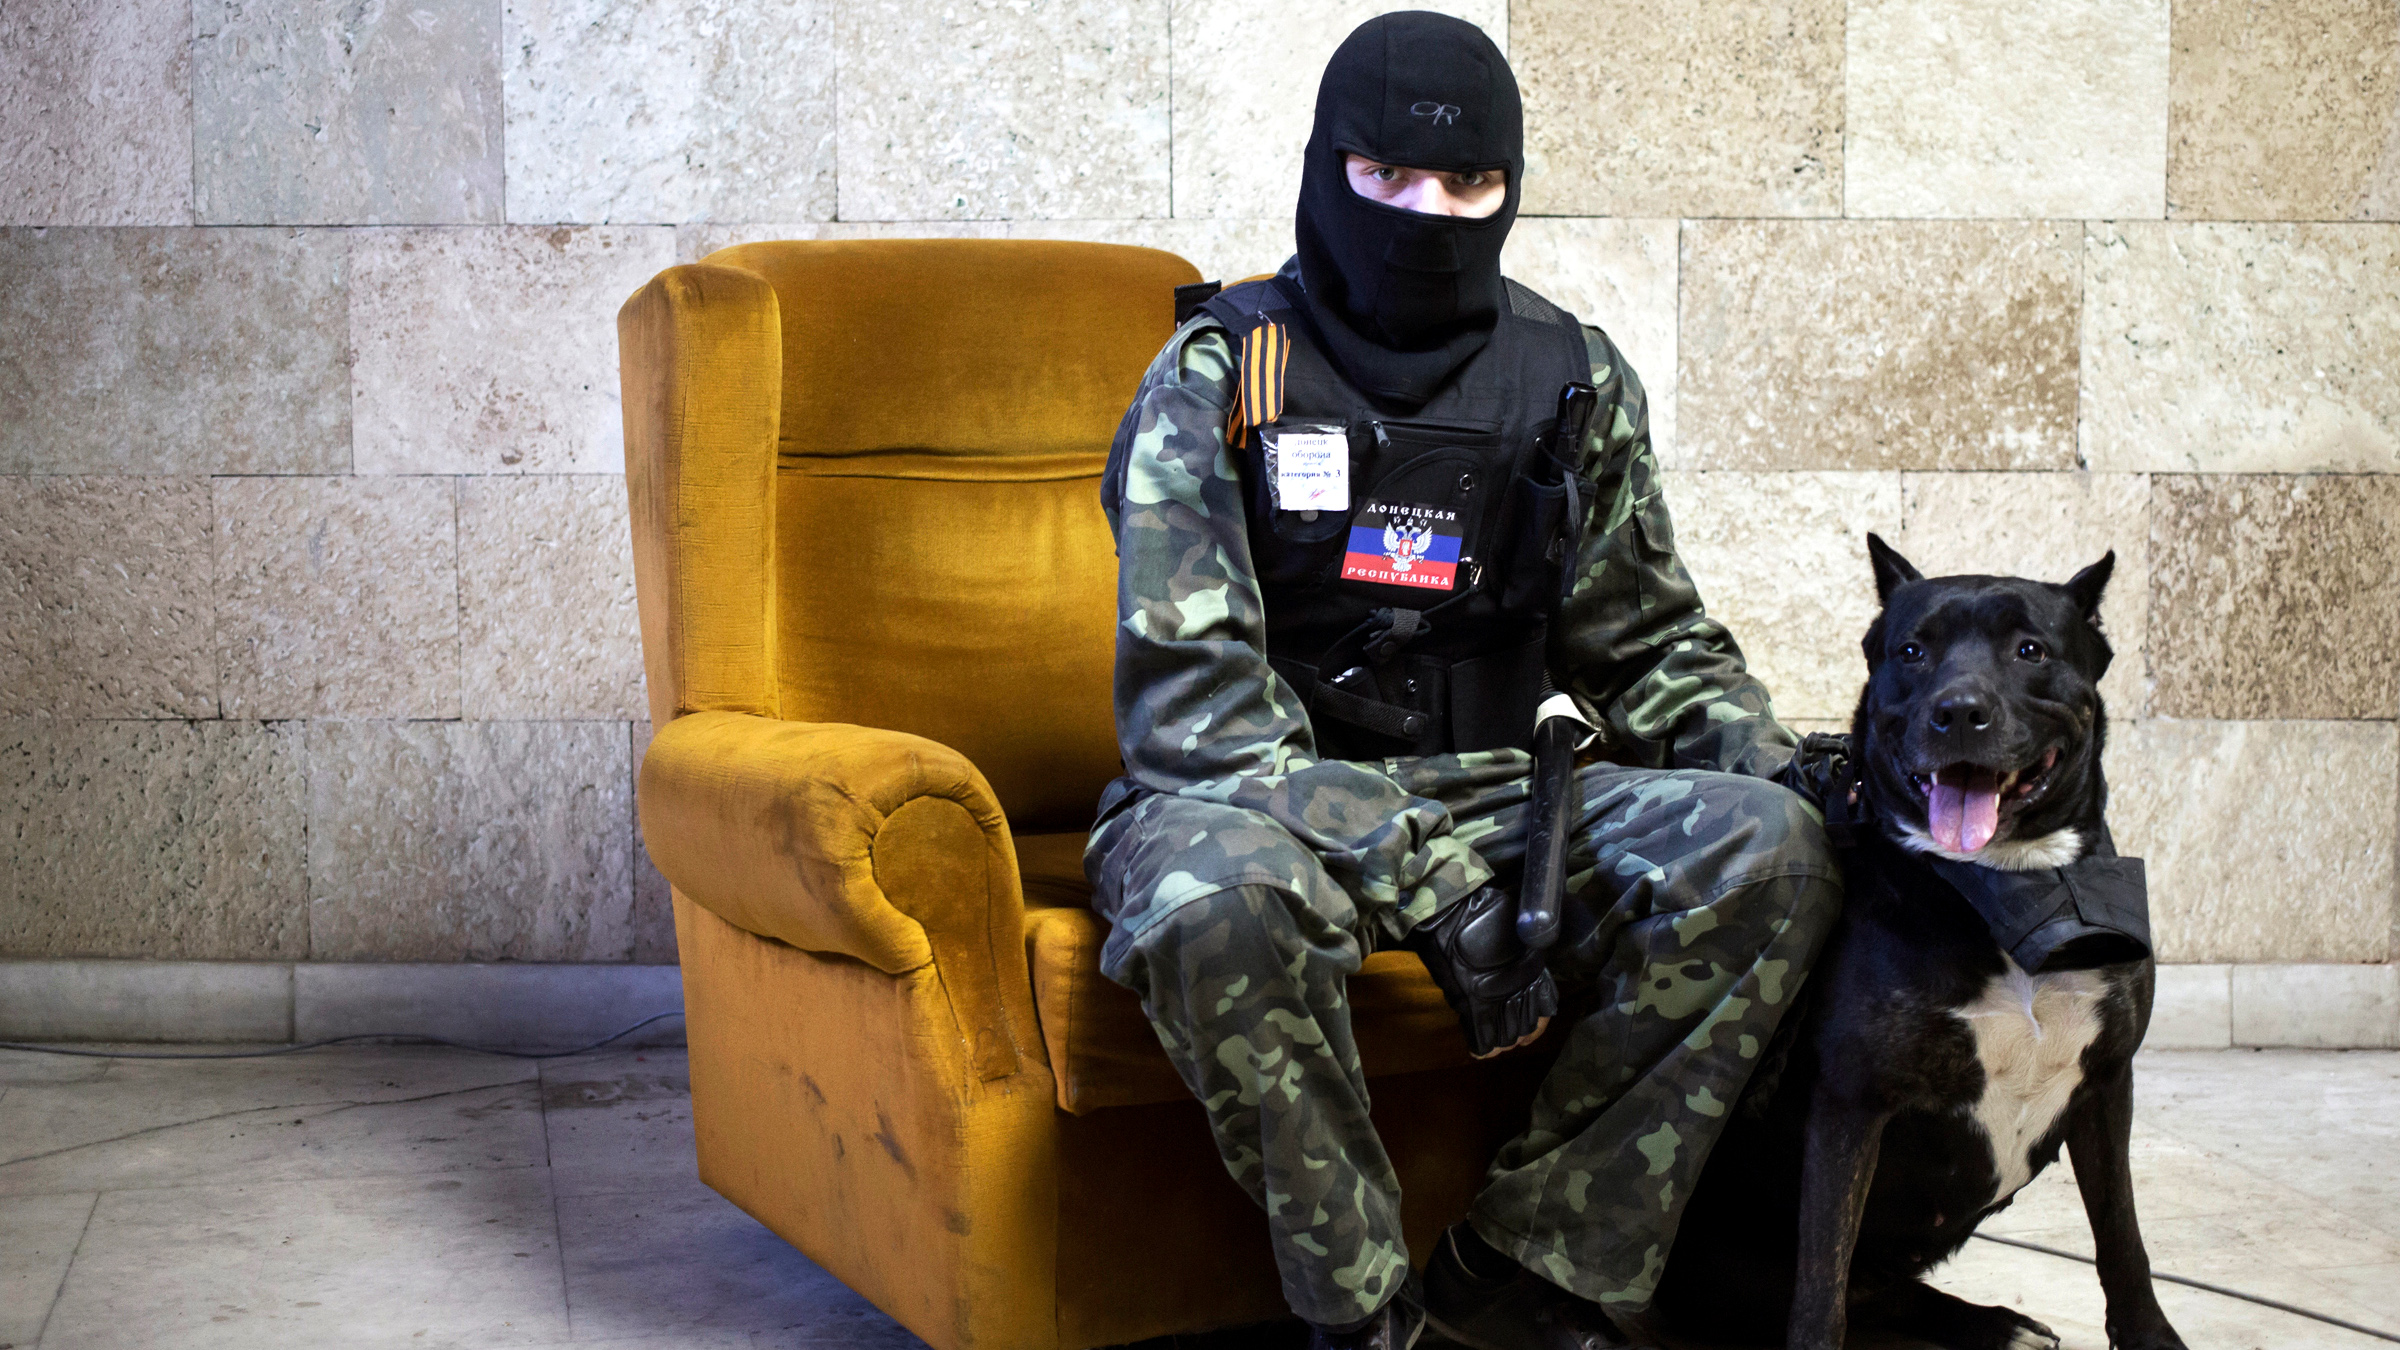 A masked pro-Russian protester sits beside a dog as he poses for a picture inside a regional government building in Donetsk, eastern Ukraine April 25, 2014. Picture taken April 25, 2014.